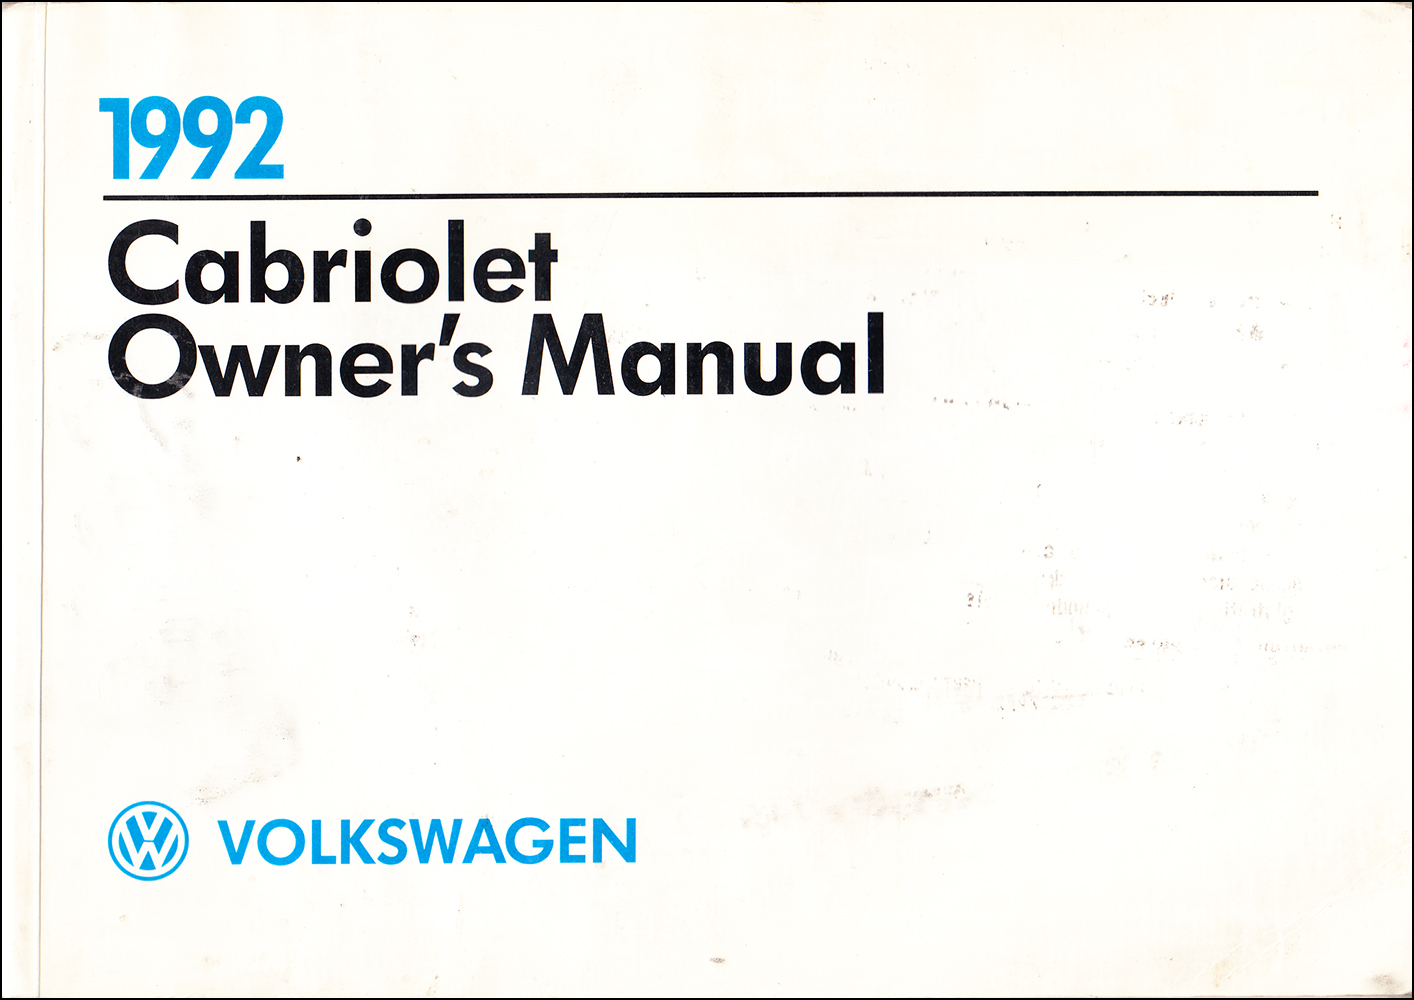 1992 Volkswagen Cabriolet Owner's Manual Original